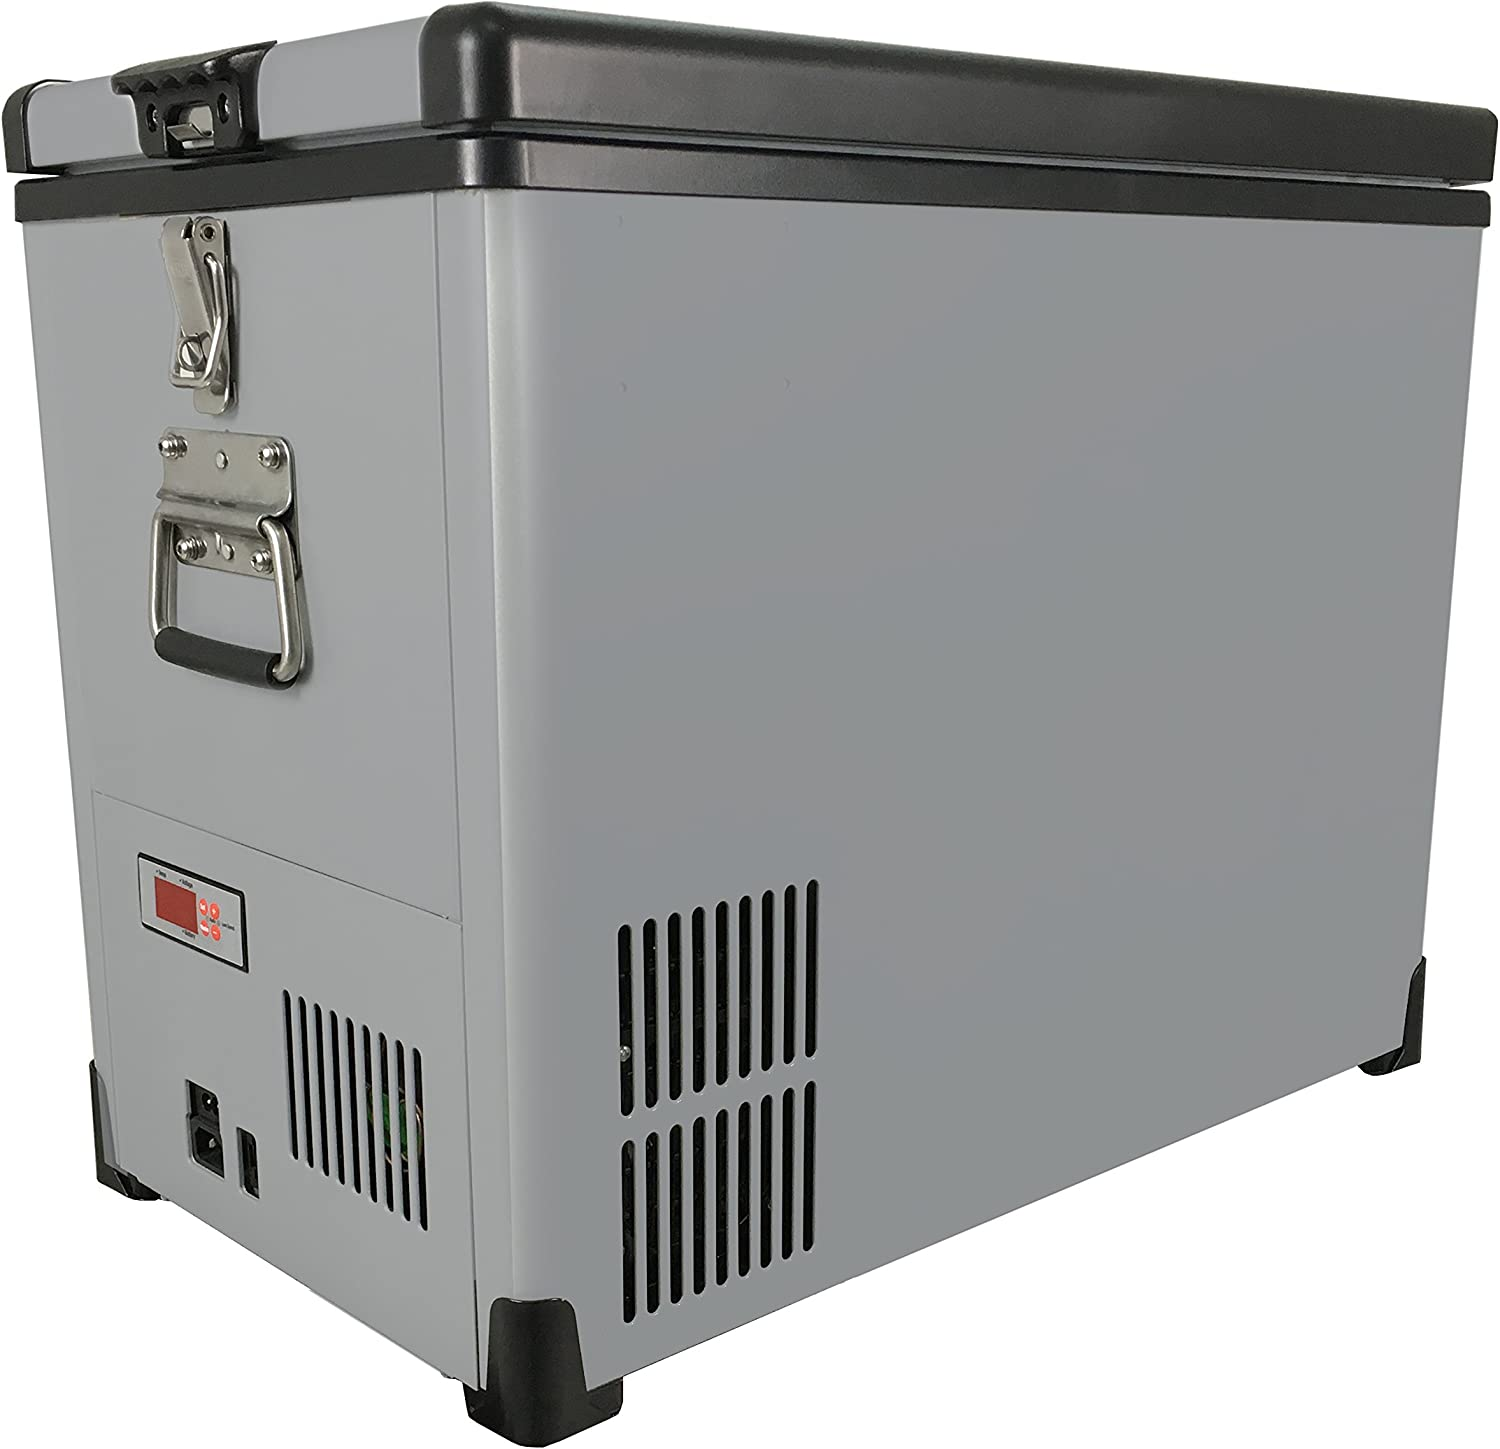 81TnJQM%2BhOL. AC SL1500 The Six Best Chest Freezers for Garage for 2021 (Review)